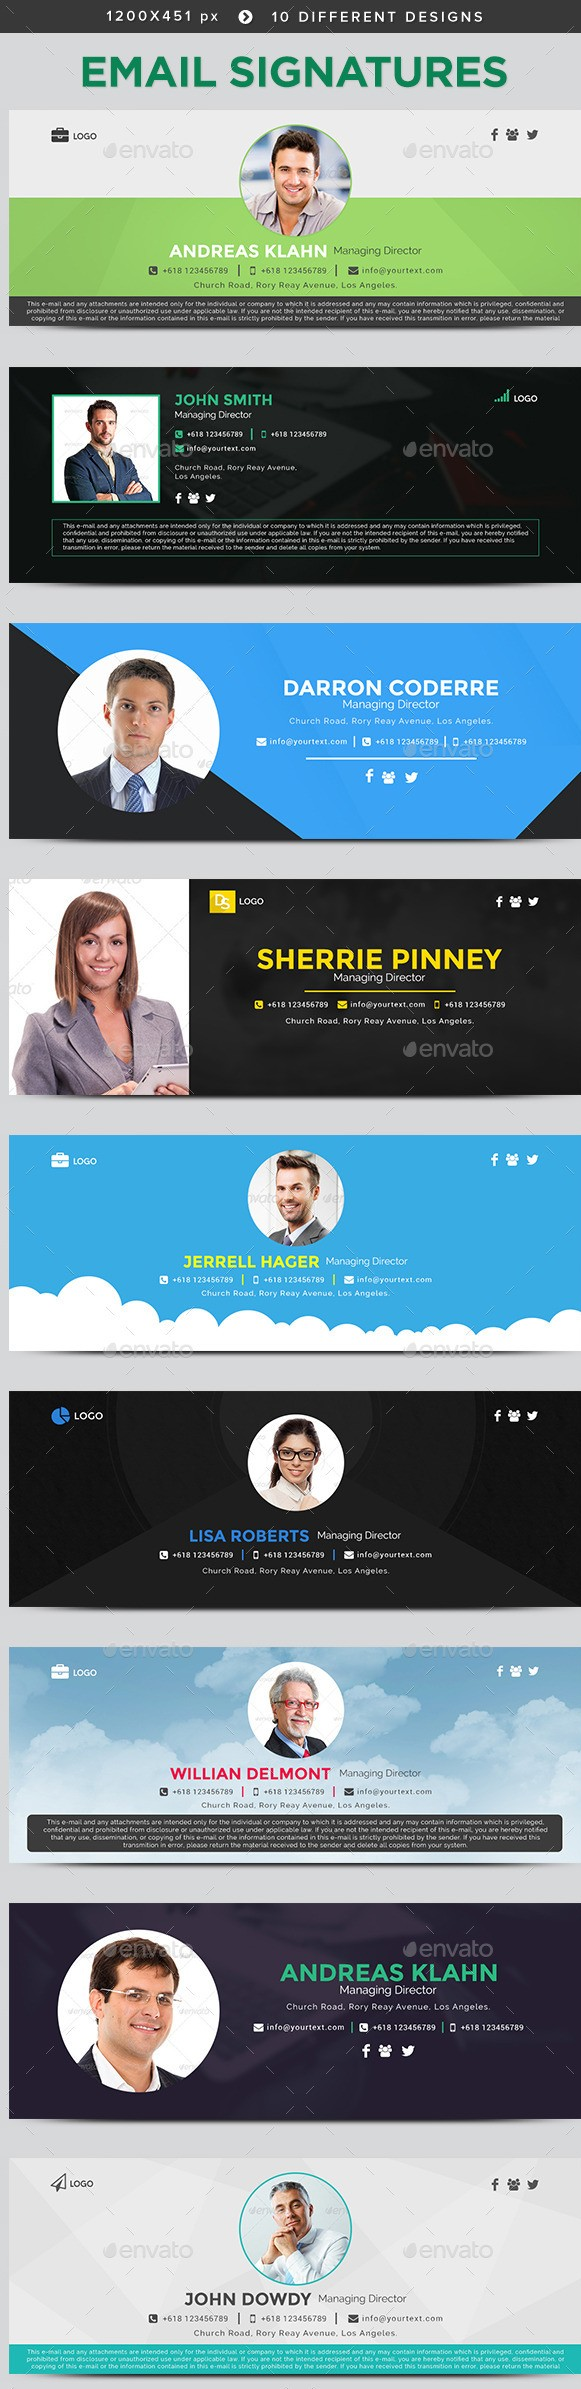 Email Signature Templates - 10 Designs